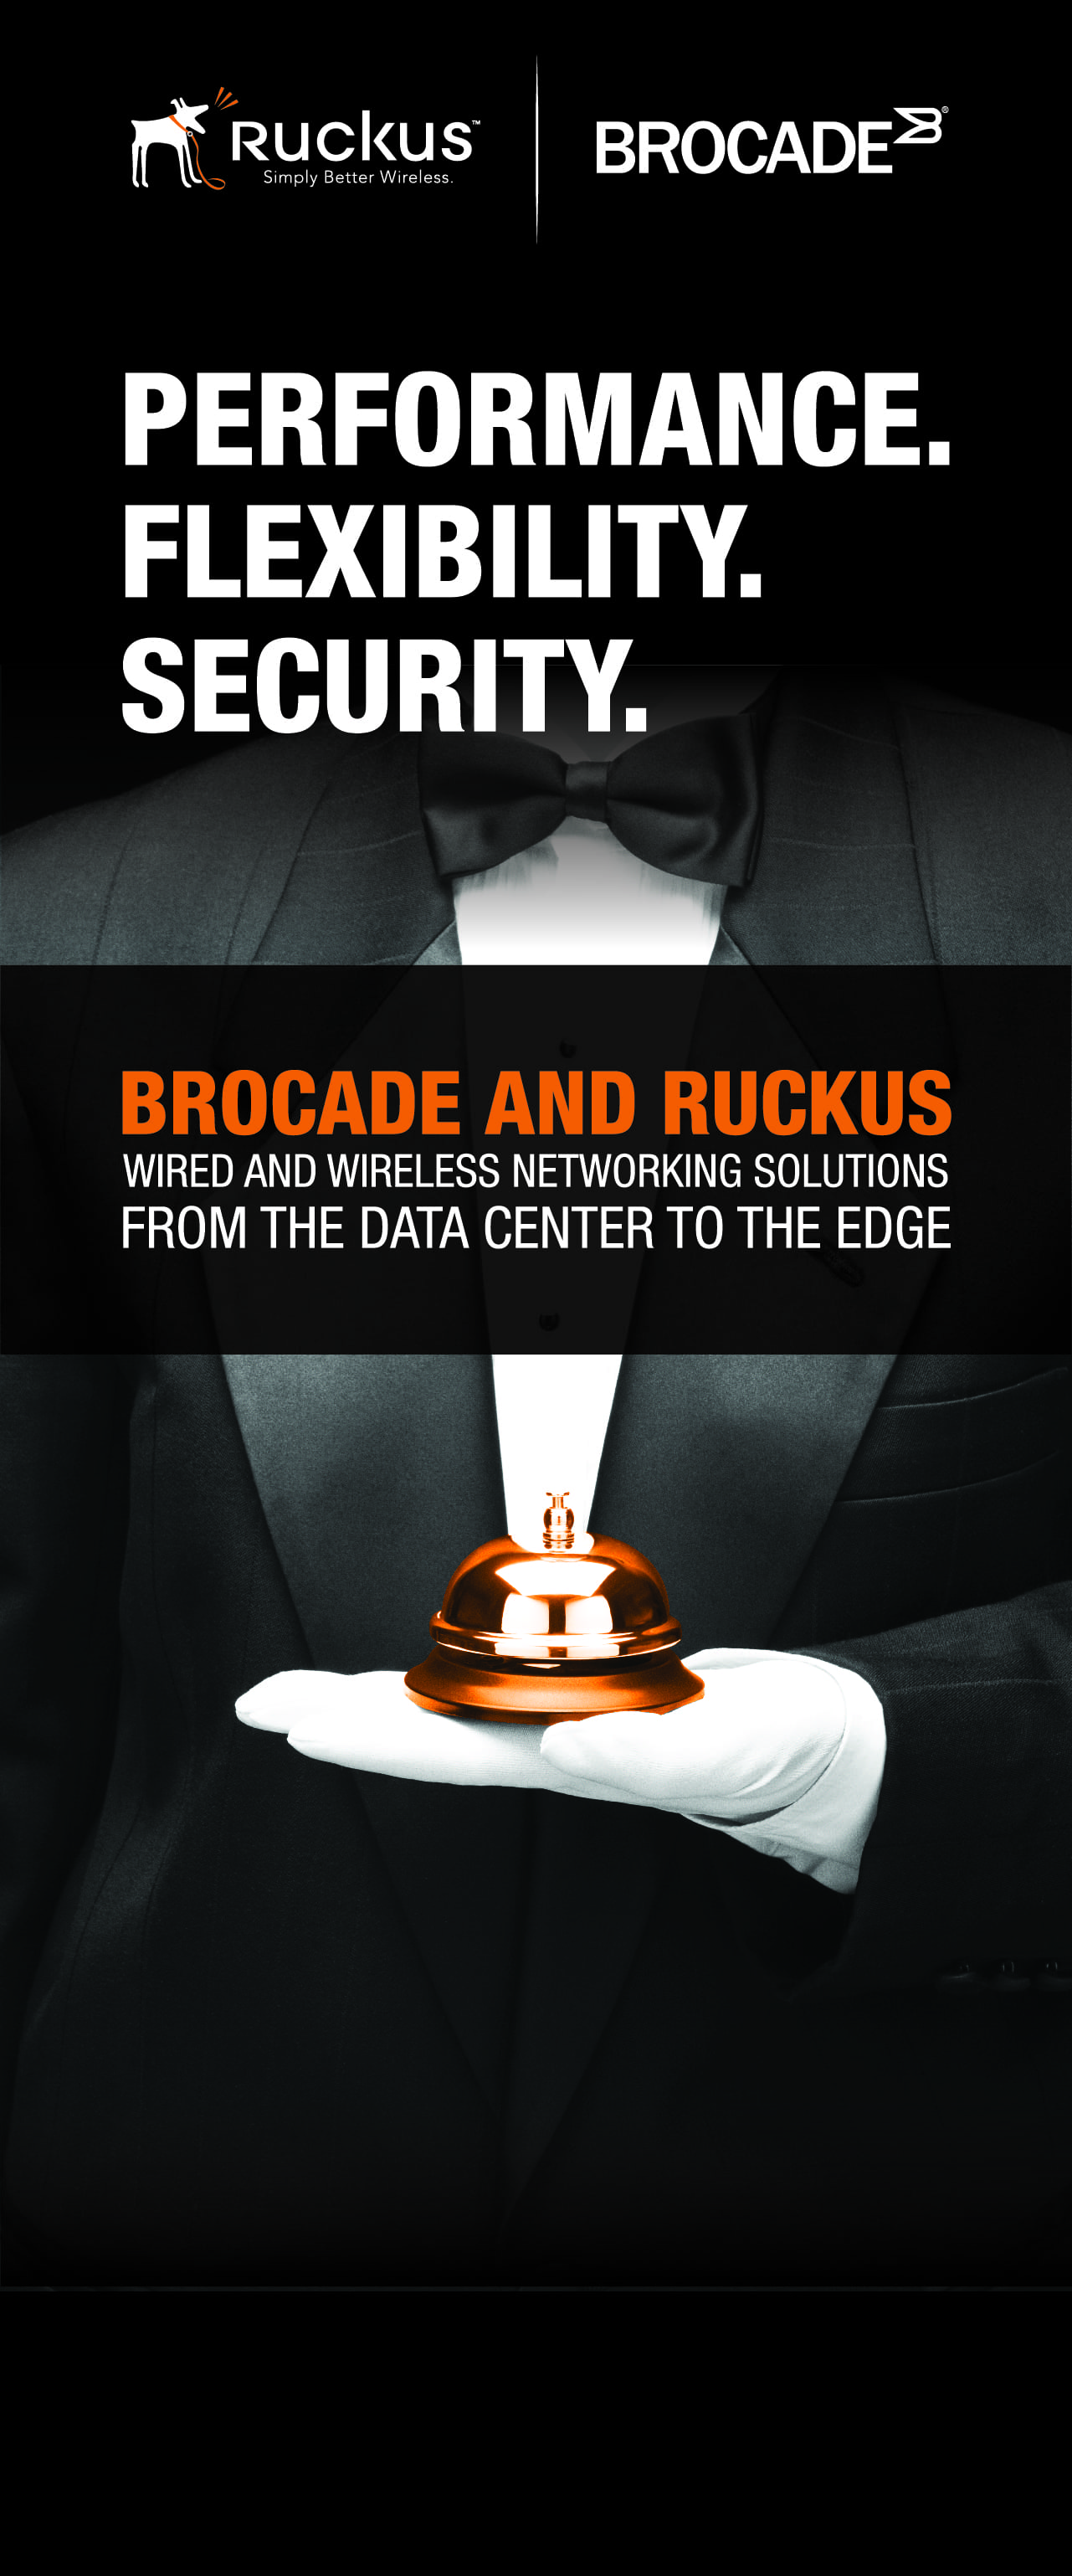 Ruckus and Brocade Banner